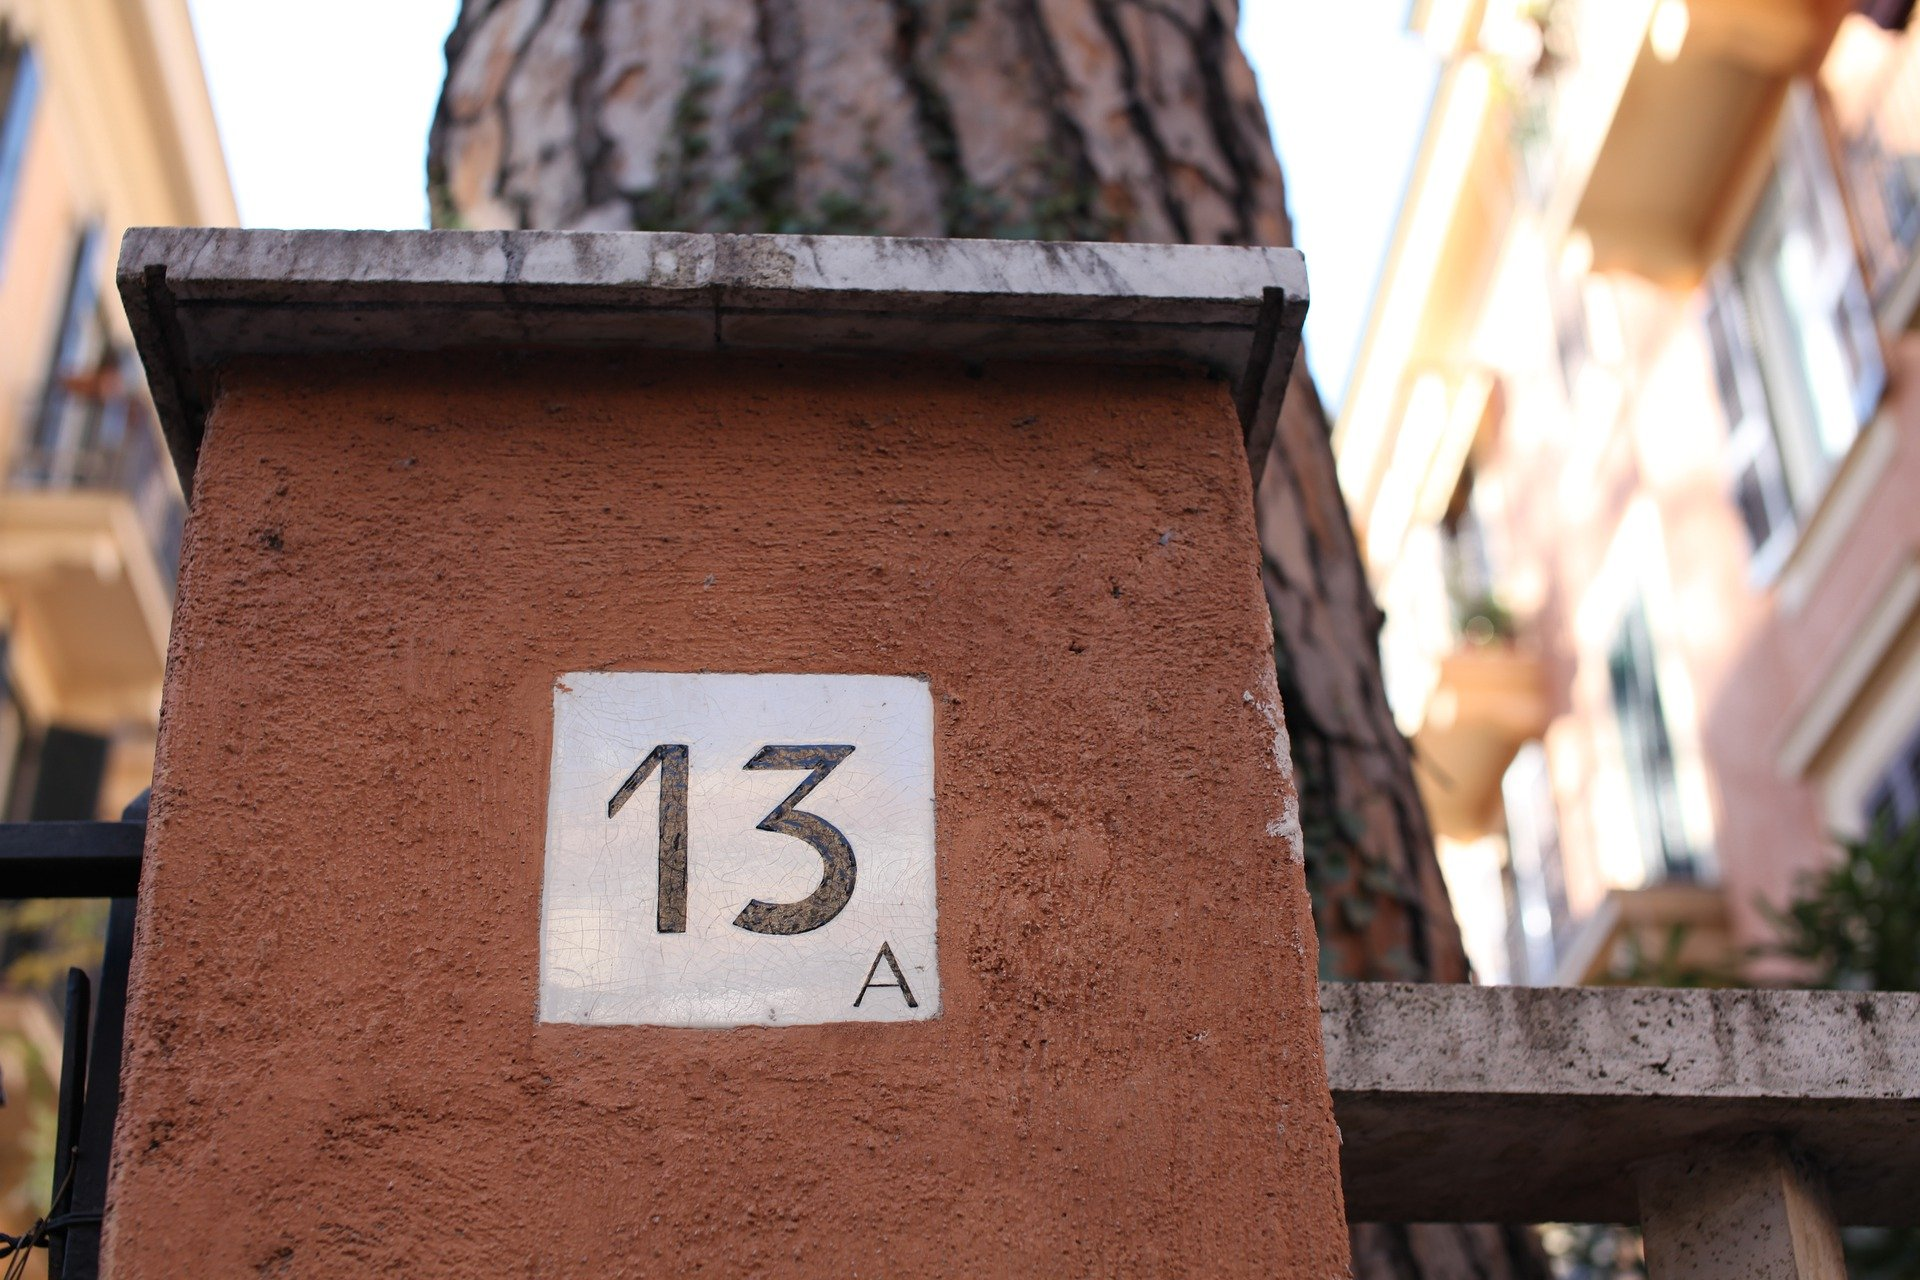 Gate No. 13 Against the Backdrop of a Tree & Buildings   Photo: Pixabay/thinkthanks